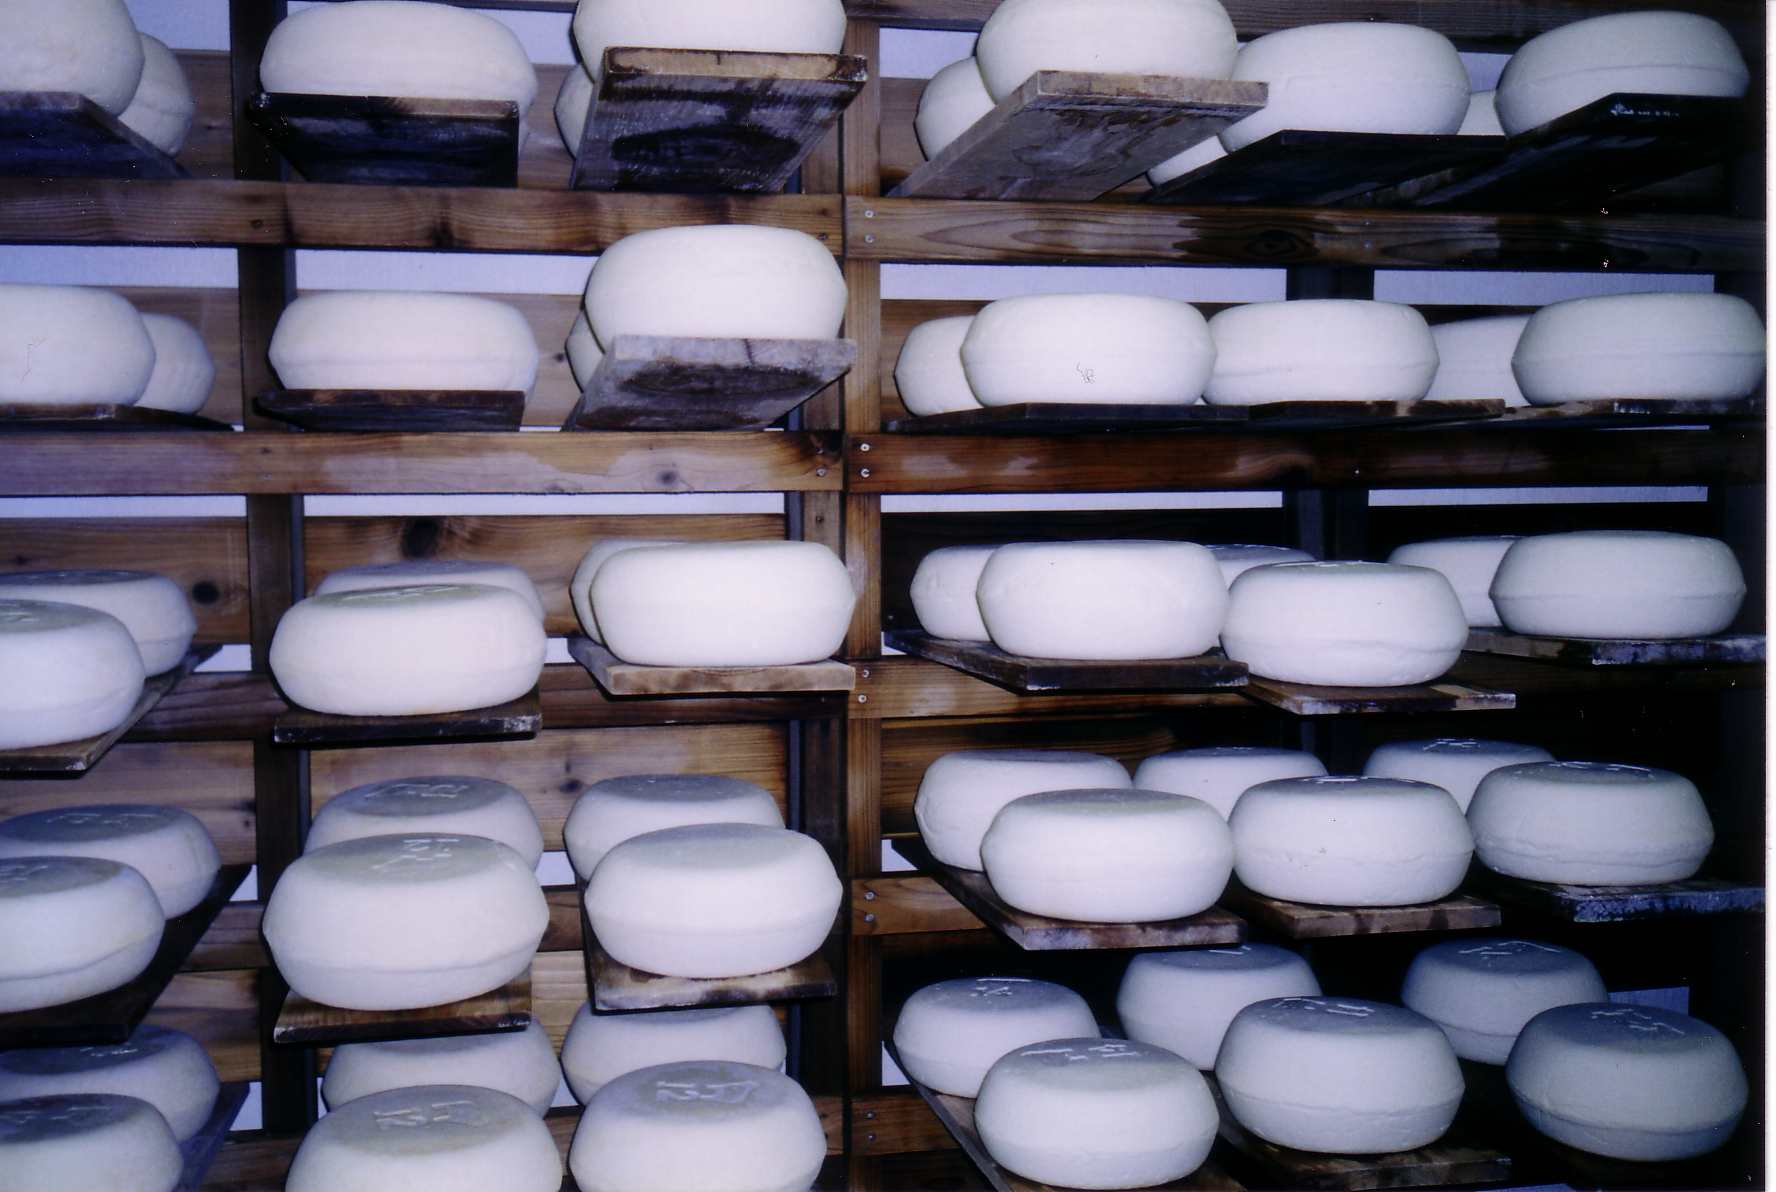 Wheels of cheese draining